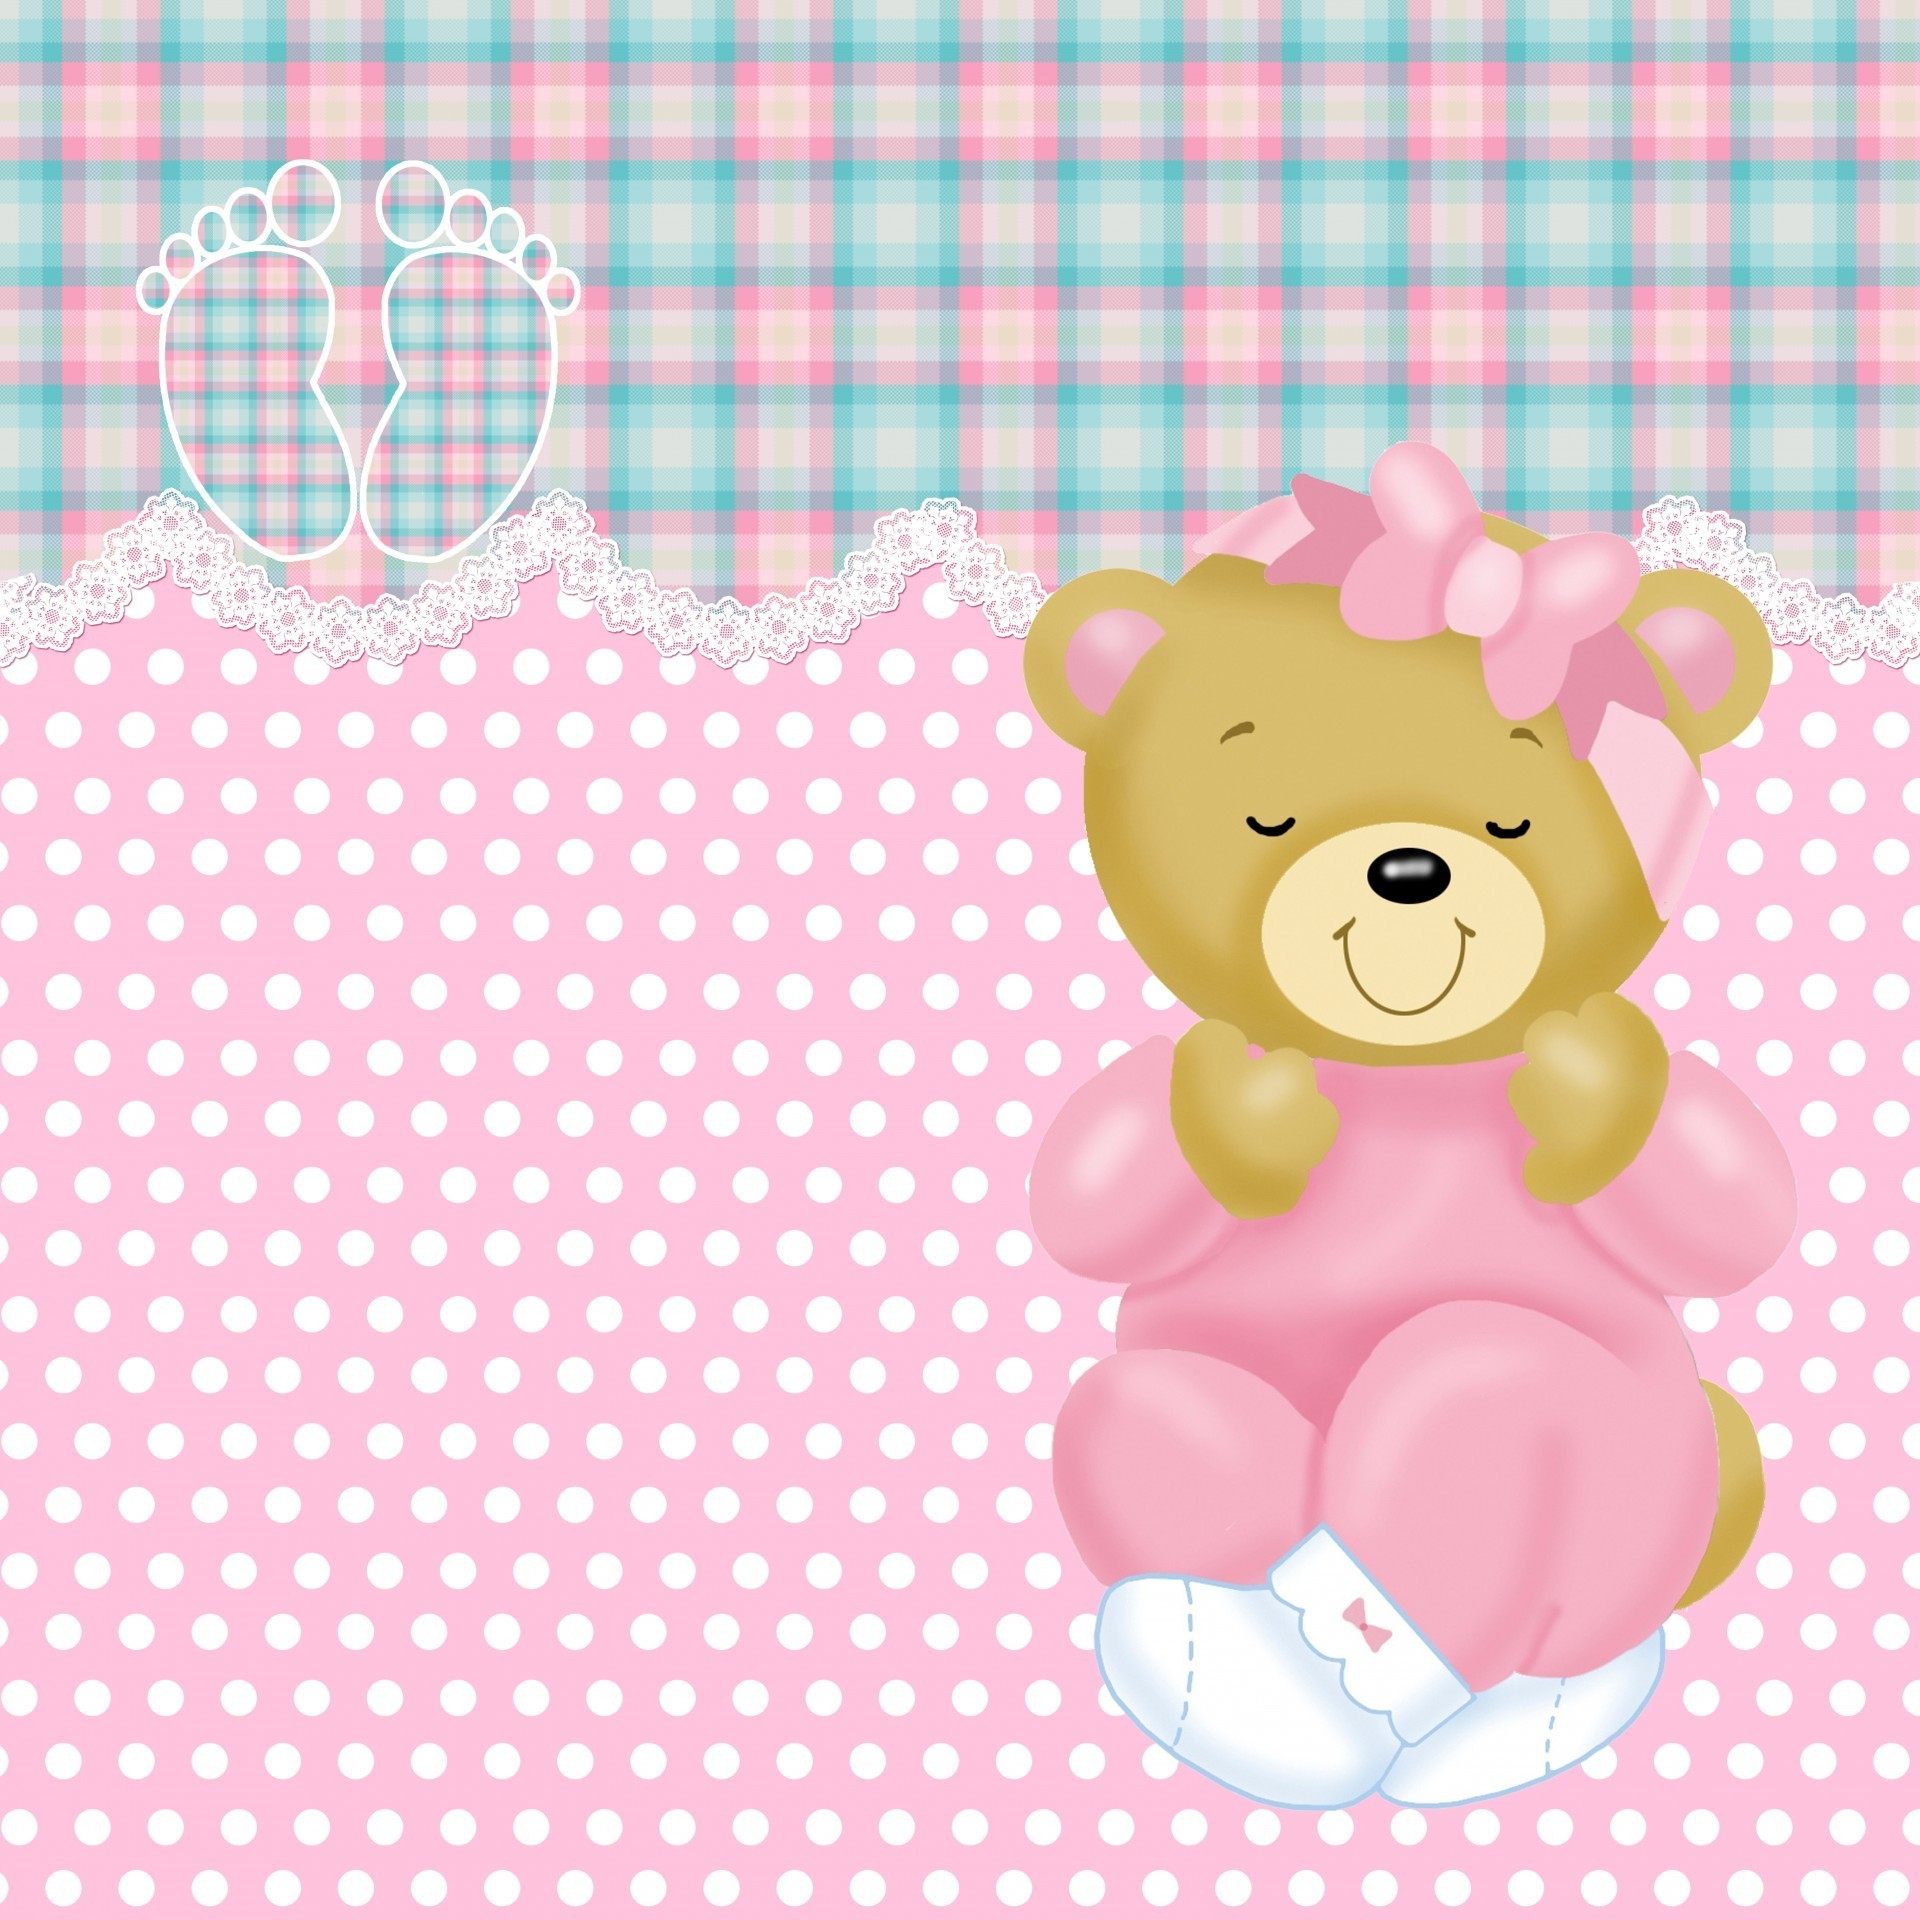 new baby backgrounds 183��